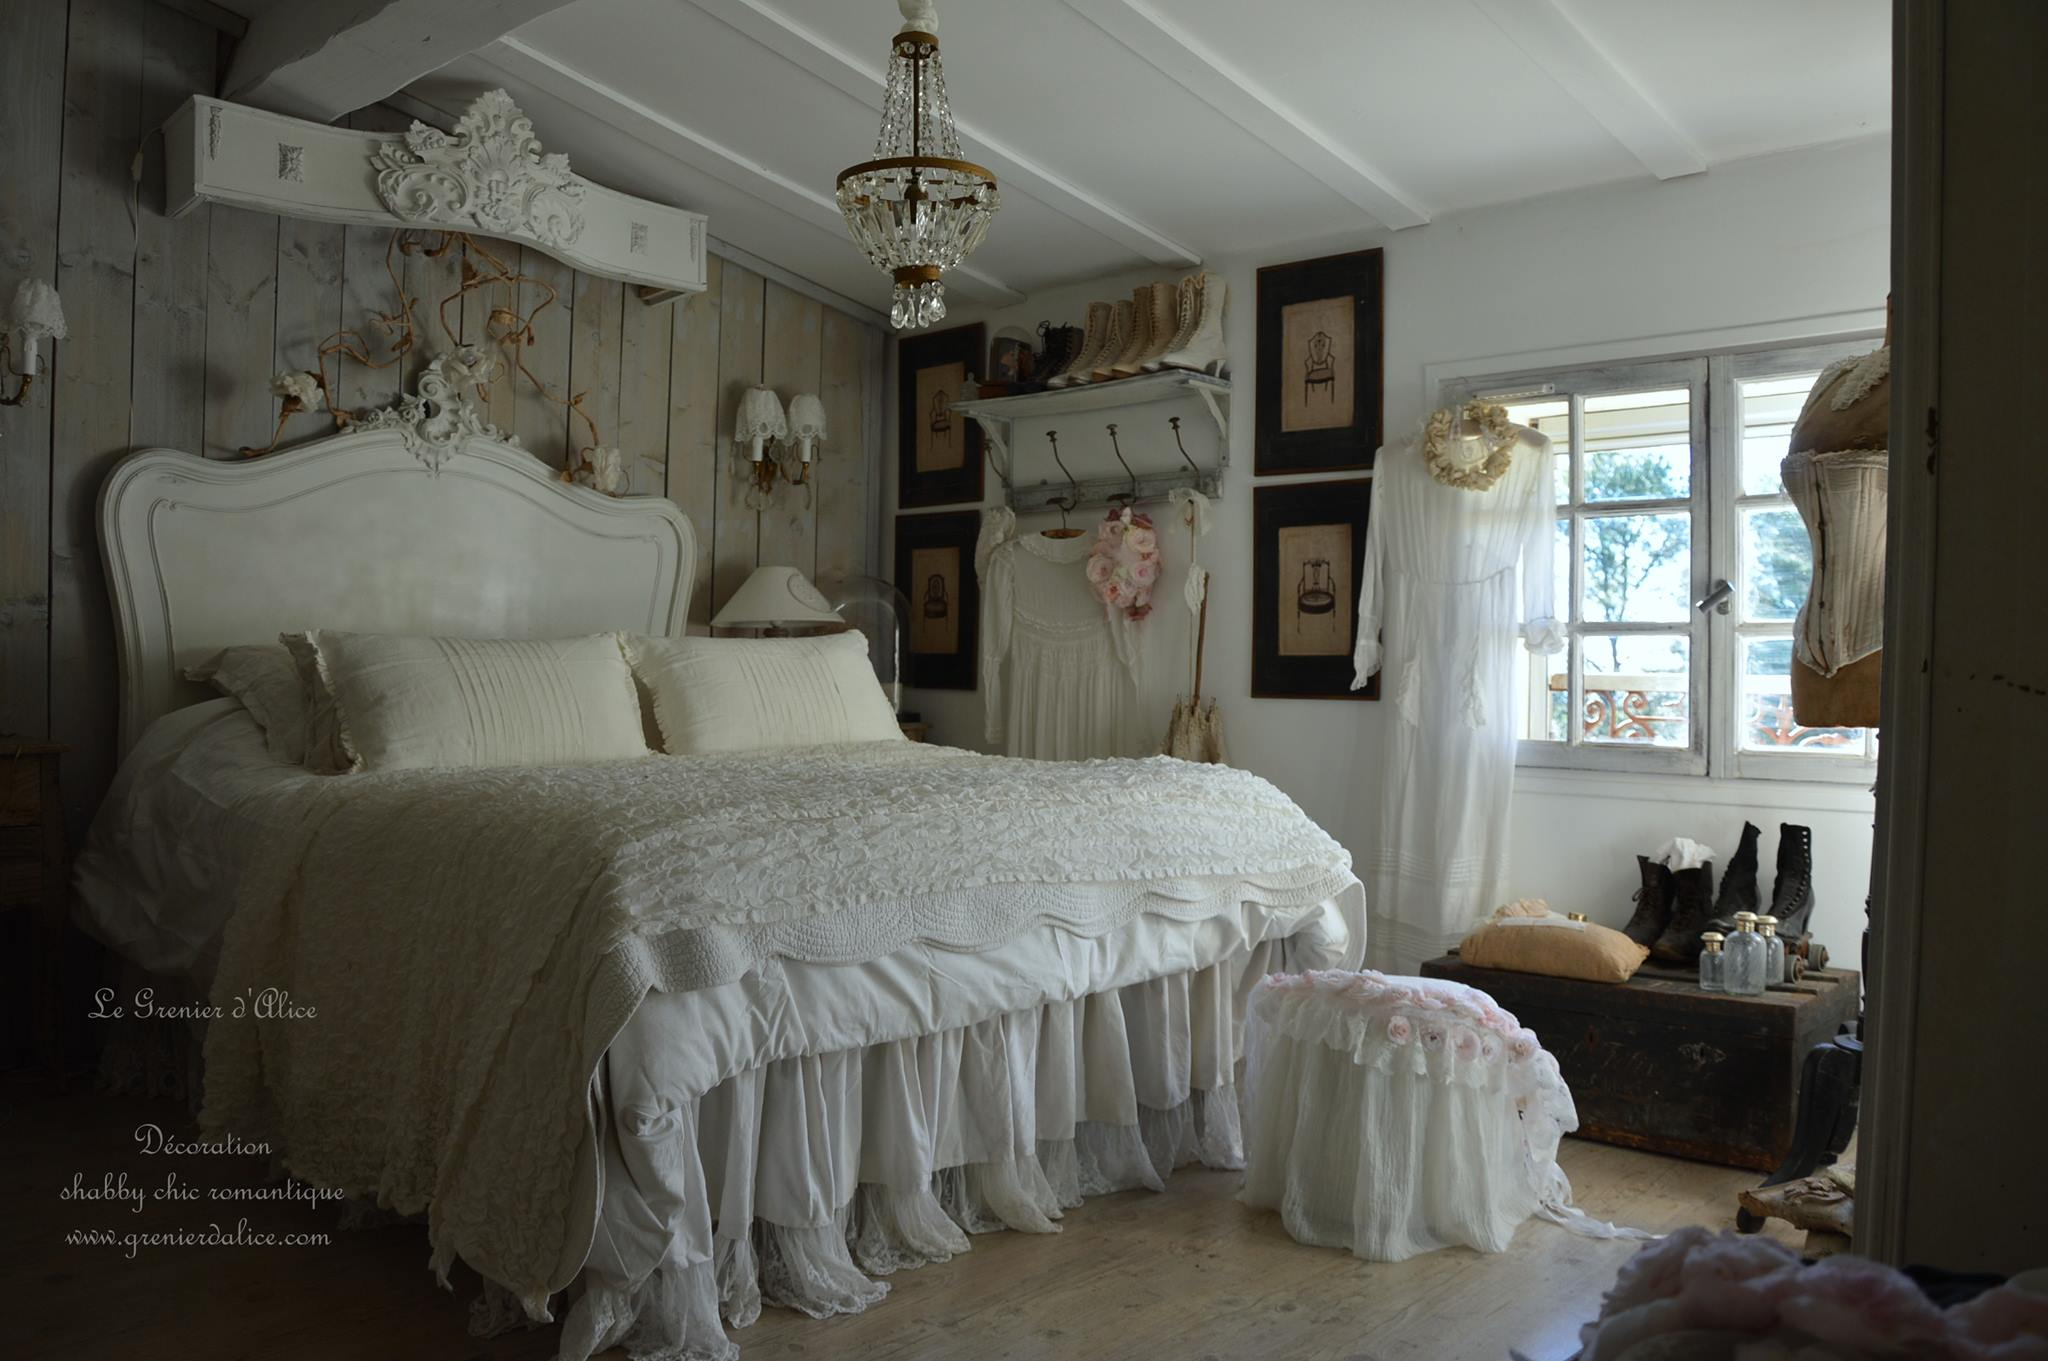 gite chambre romantique et shabby chic sur aix en provence. Black Bedroom Furniture Sets. Home Design Ideas